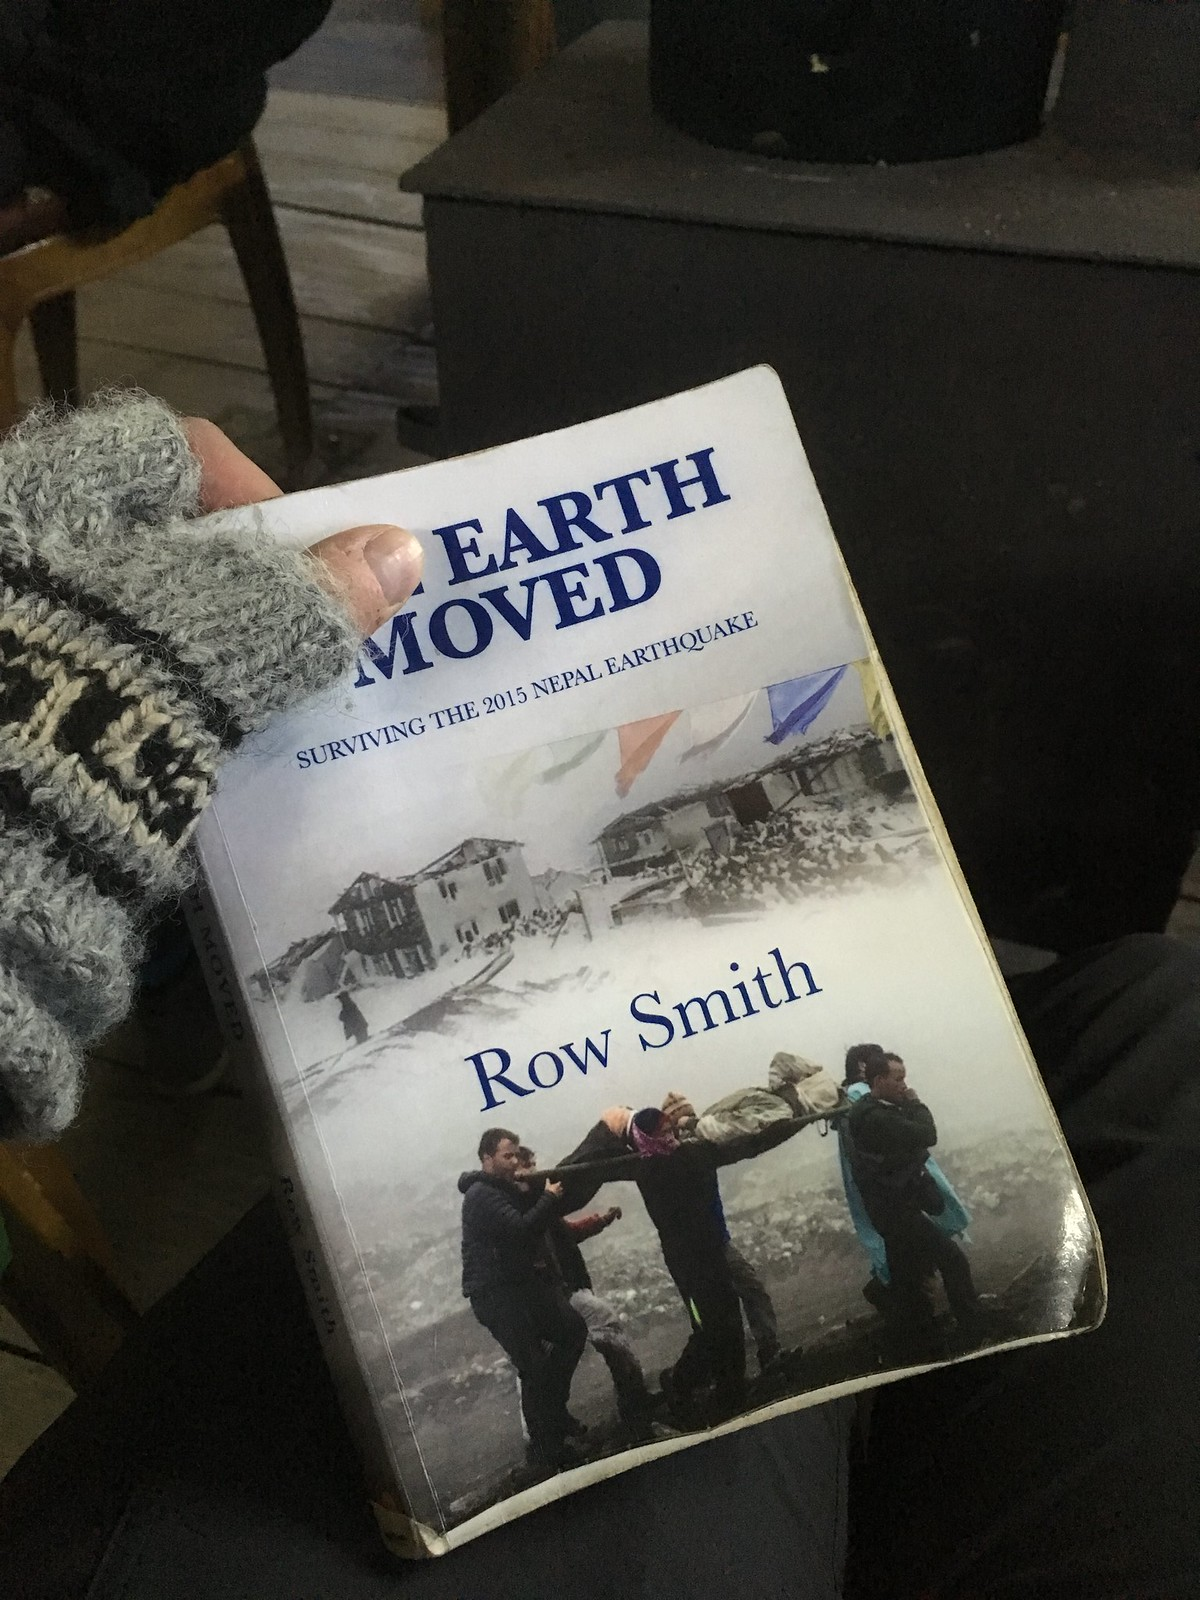 Row Smith - The Earth Moved